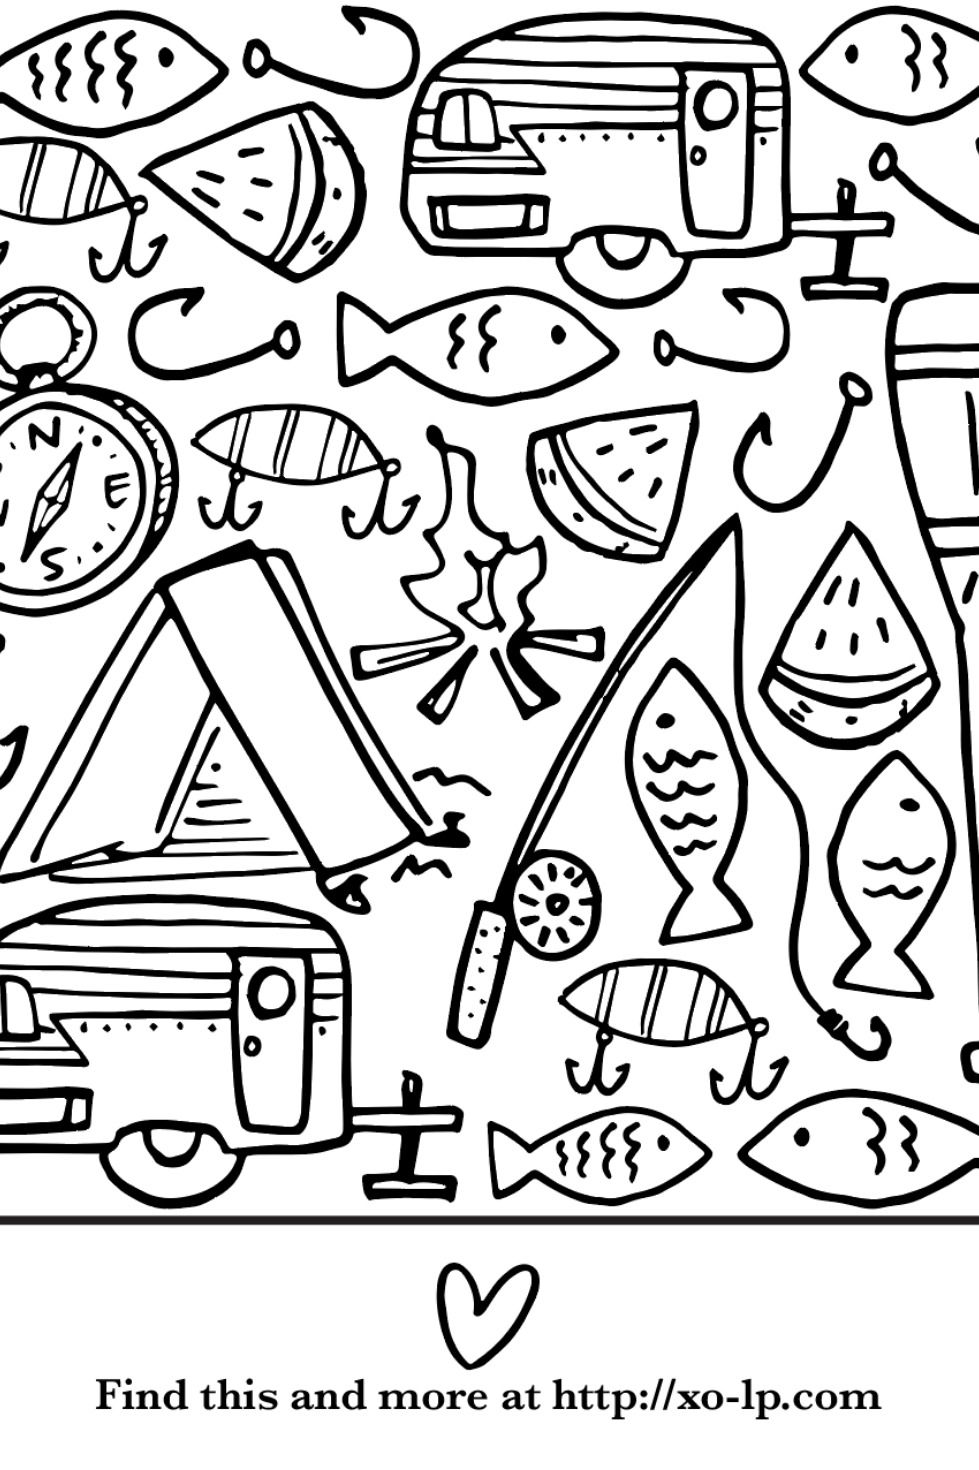 The perfect coloring activity for kids (and adults!). A